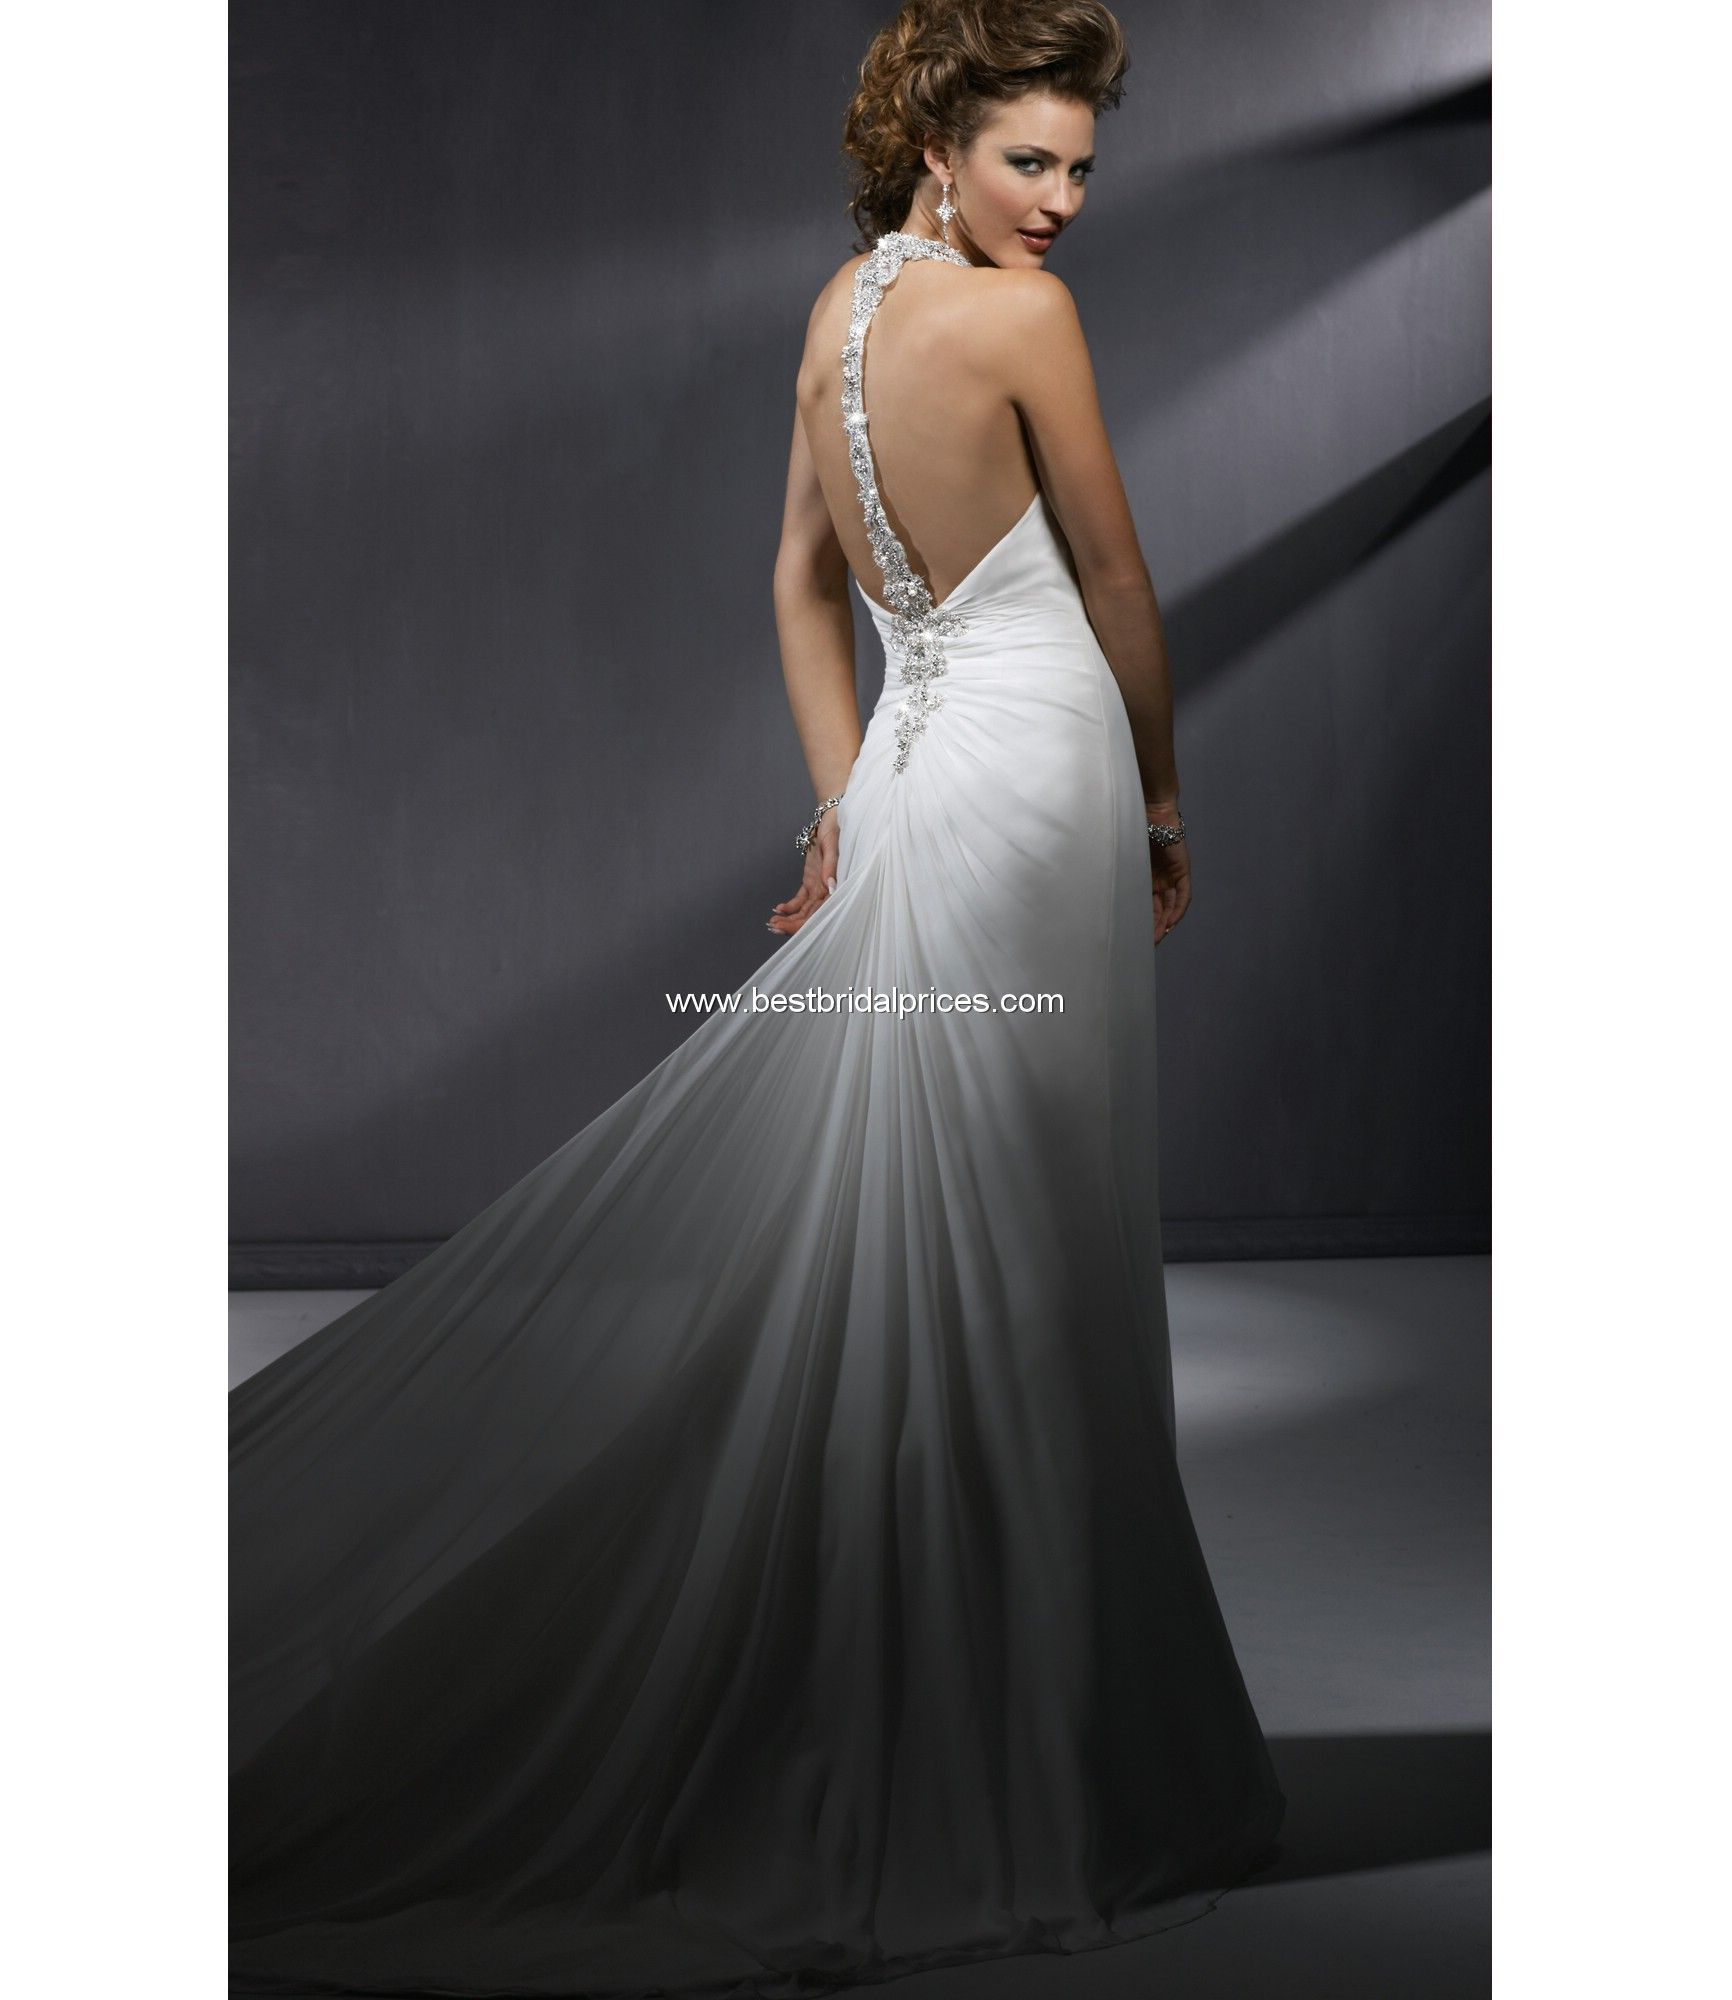 Maggie Sottero Quick Delivery Wedding Dresses Style Reese A3240 Description Spring 2009